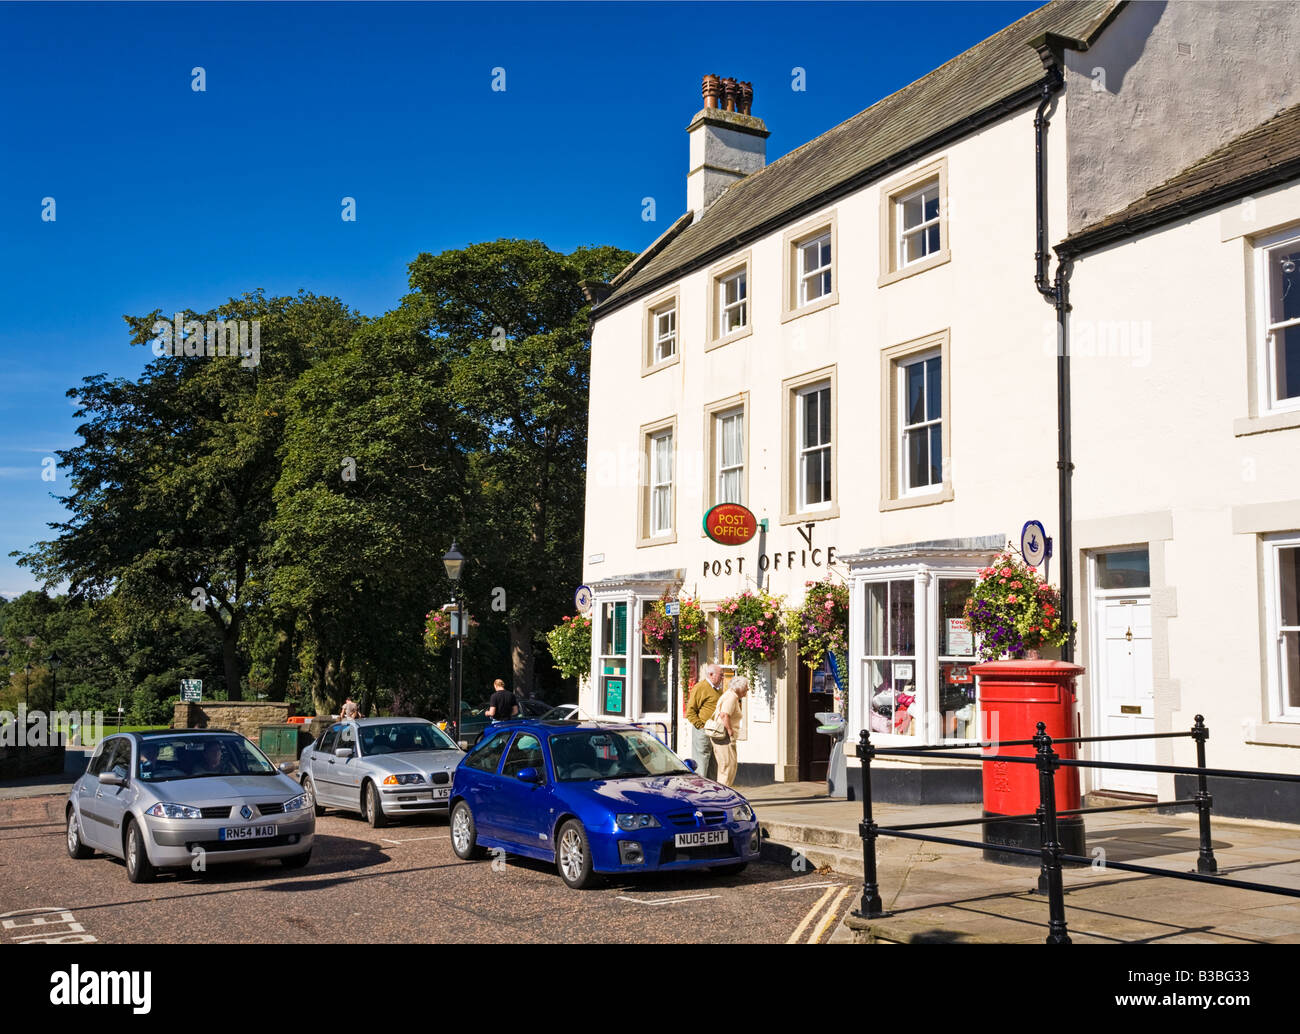 Small colourful British Post Office at Barnard Castle, County Durham, England, UK - Stock Image